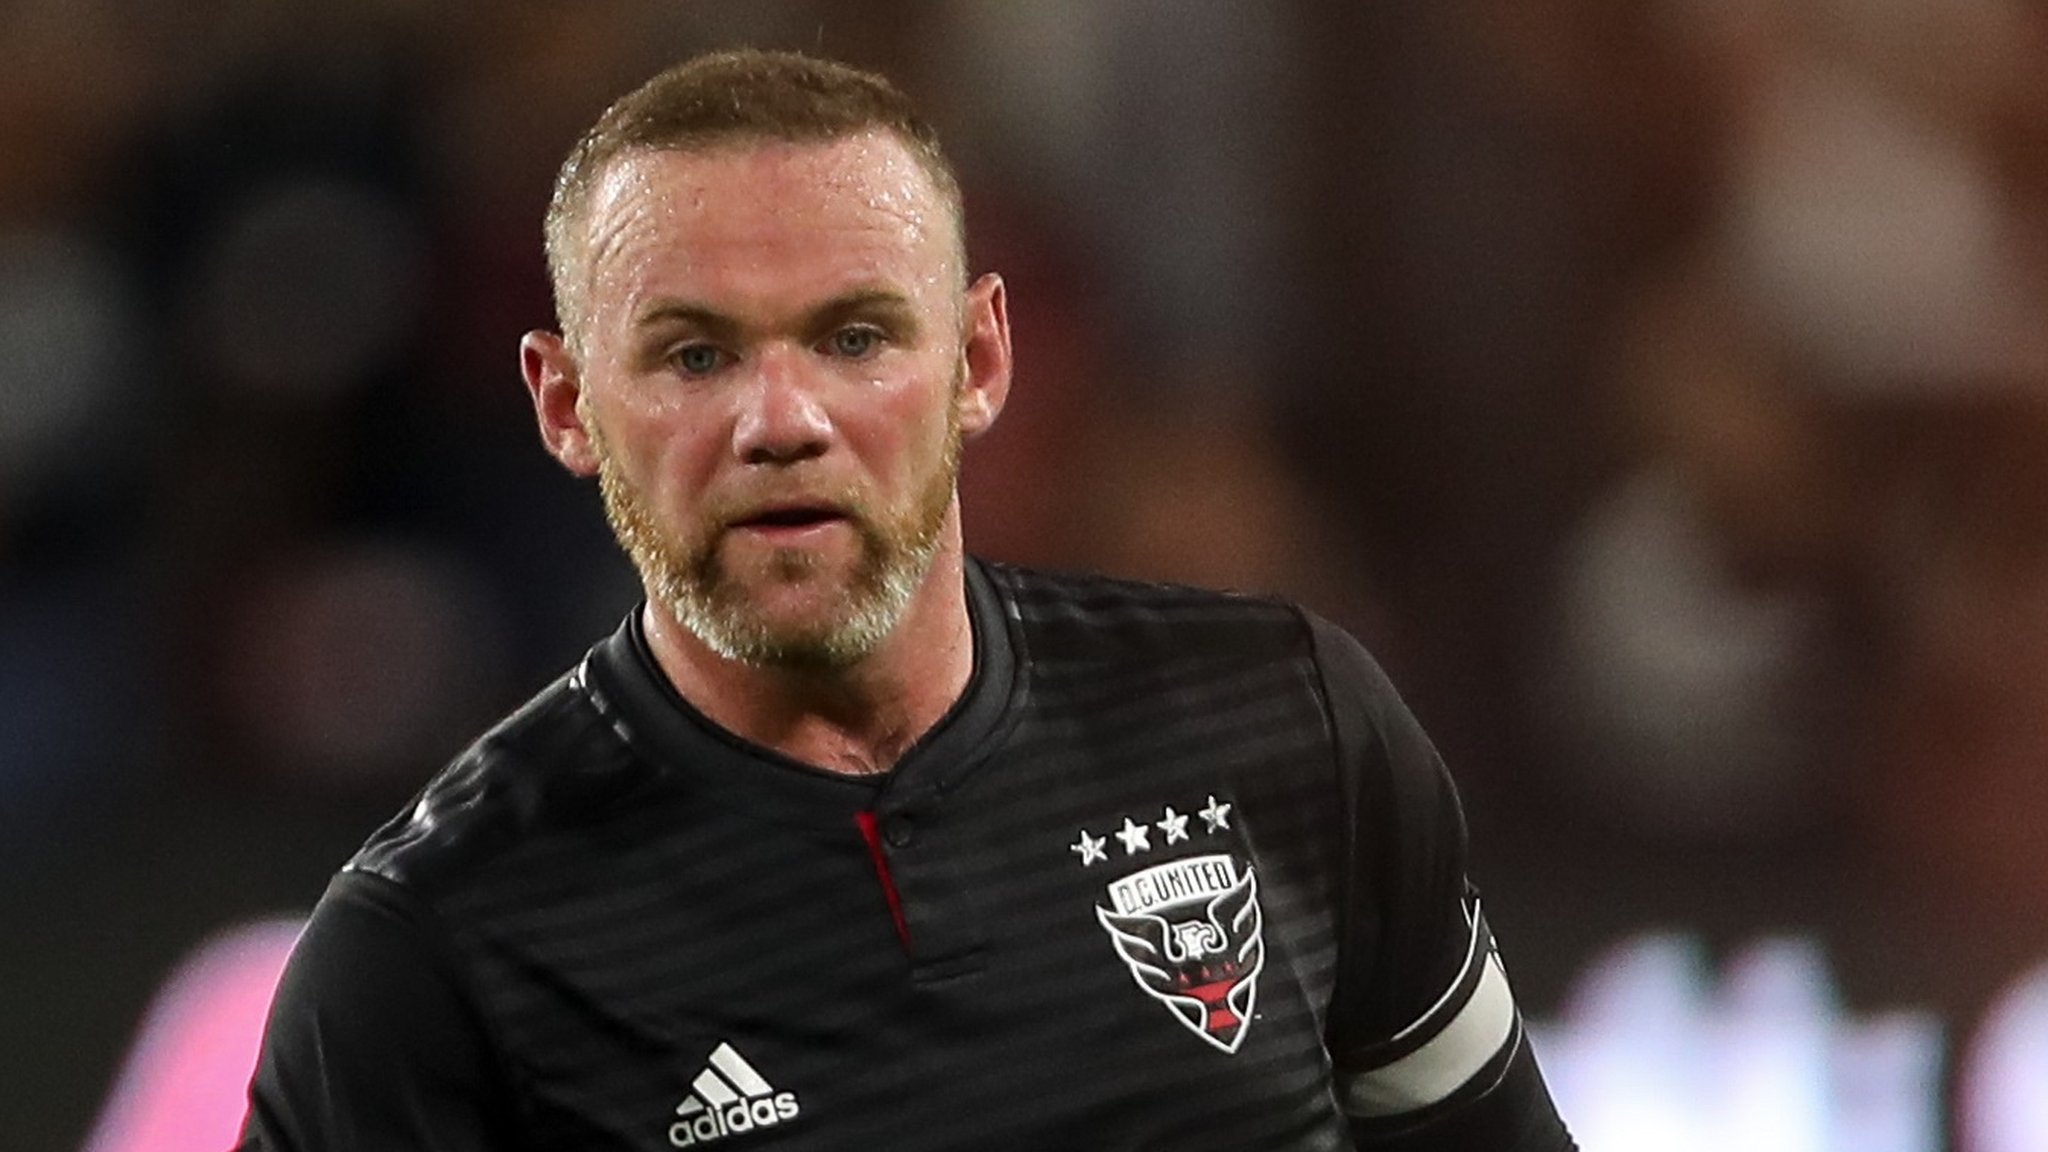 Lung-busting sprint, goal-saving tackle, pinpoint assist - Rooney tees up 96th-minute winner